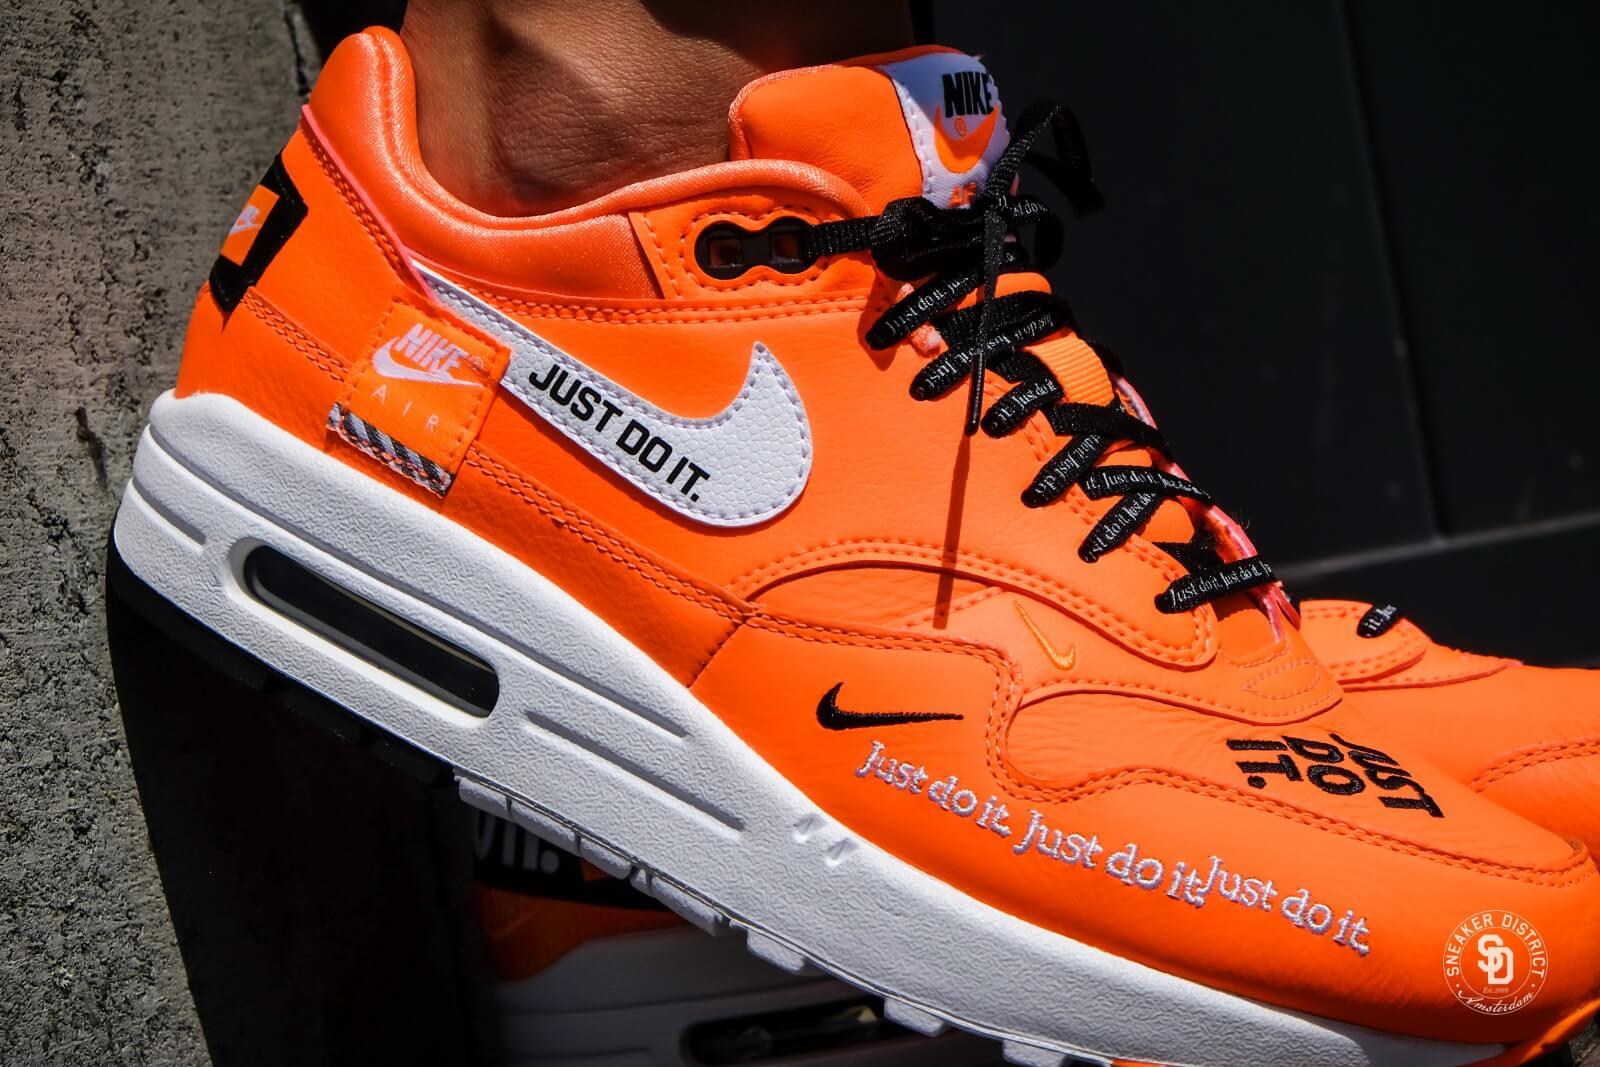 best service 7e1f8 1aed9 ... question paper trein zwolle amsterdam jim mason wood gasifier Nike bang  dat ik longkanker heb Women s Air Max 1 LUX Just Do It Total  Orange White-Black